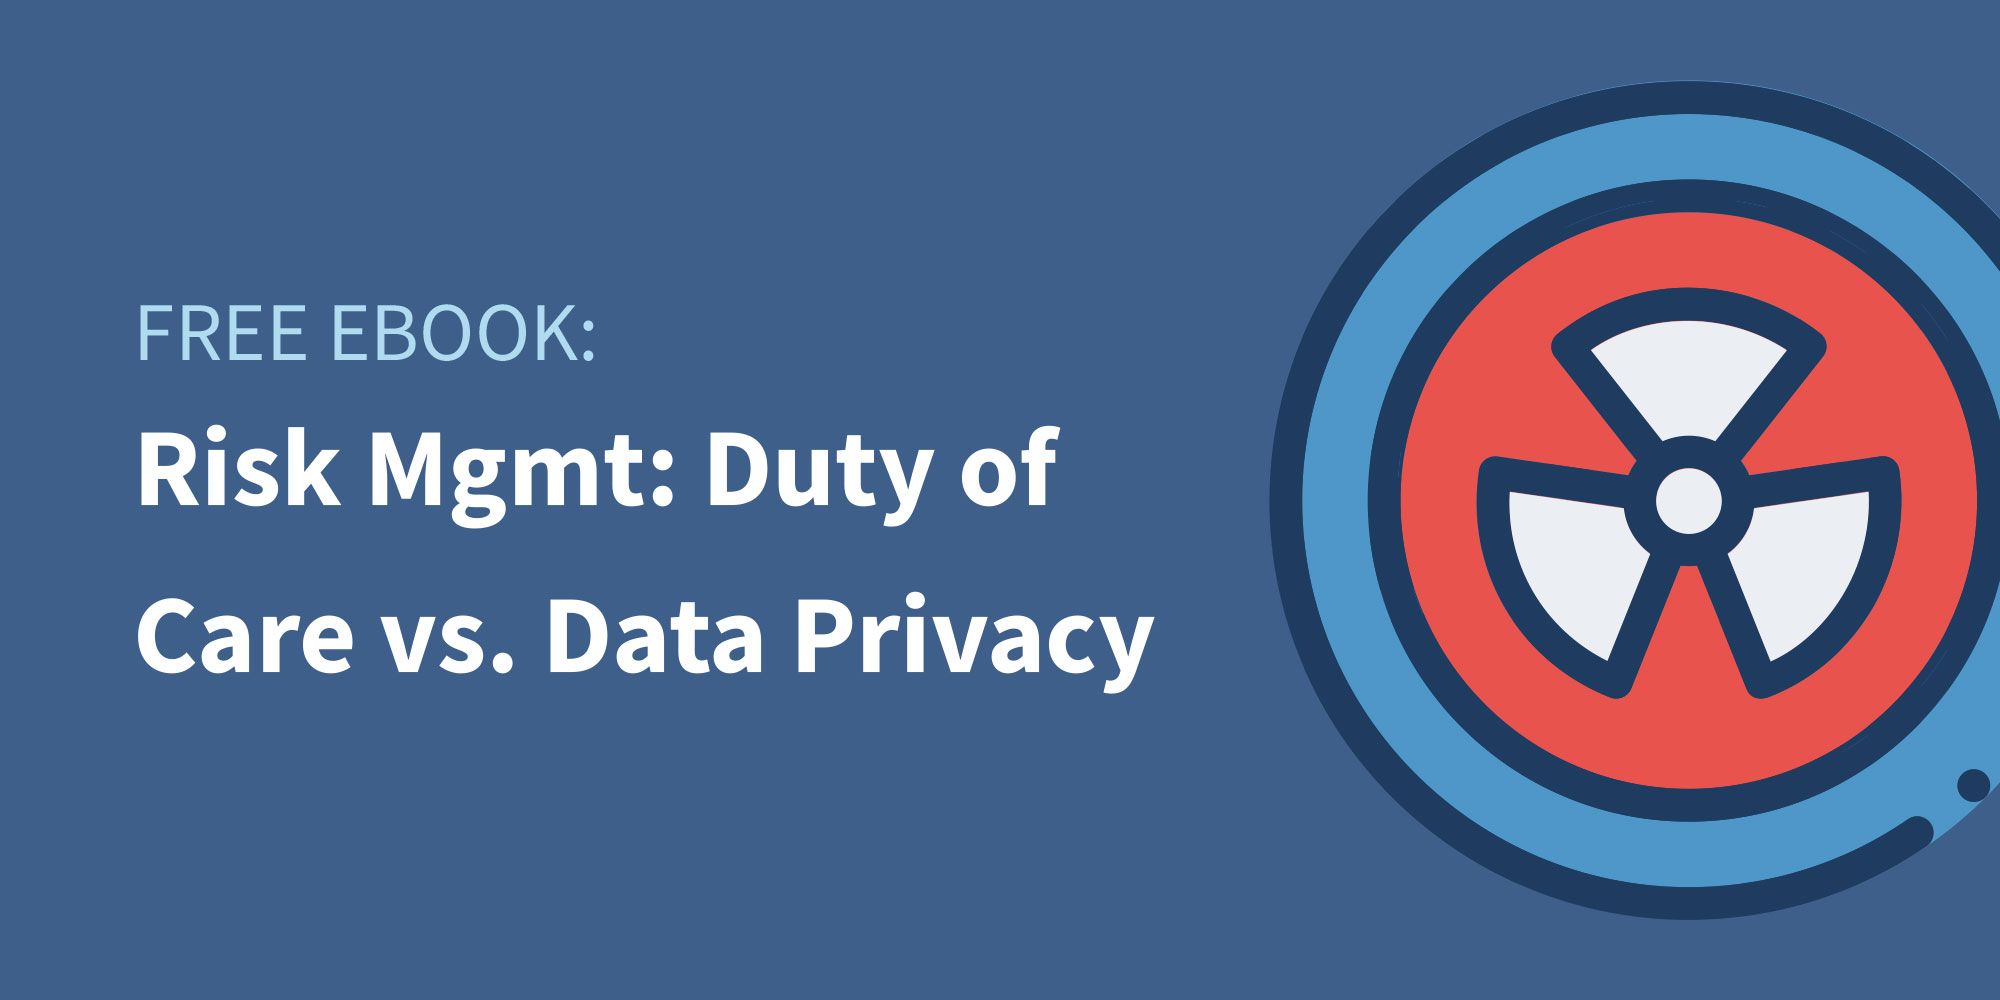 Traxo eBook Risk Management Duty of Care vs Data Privacy Featured Image